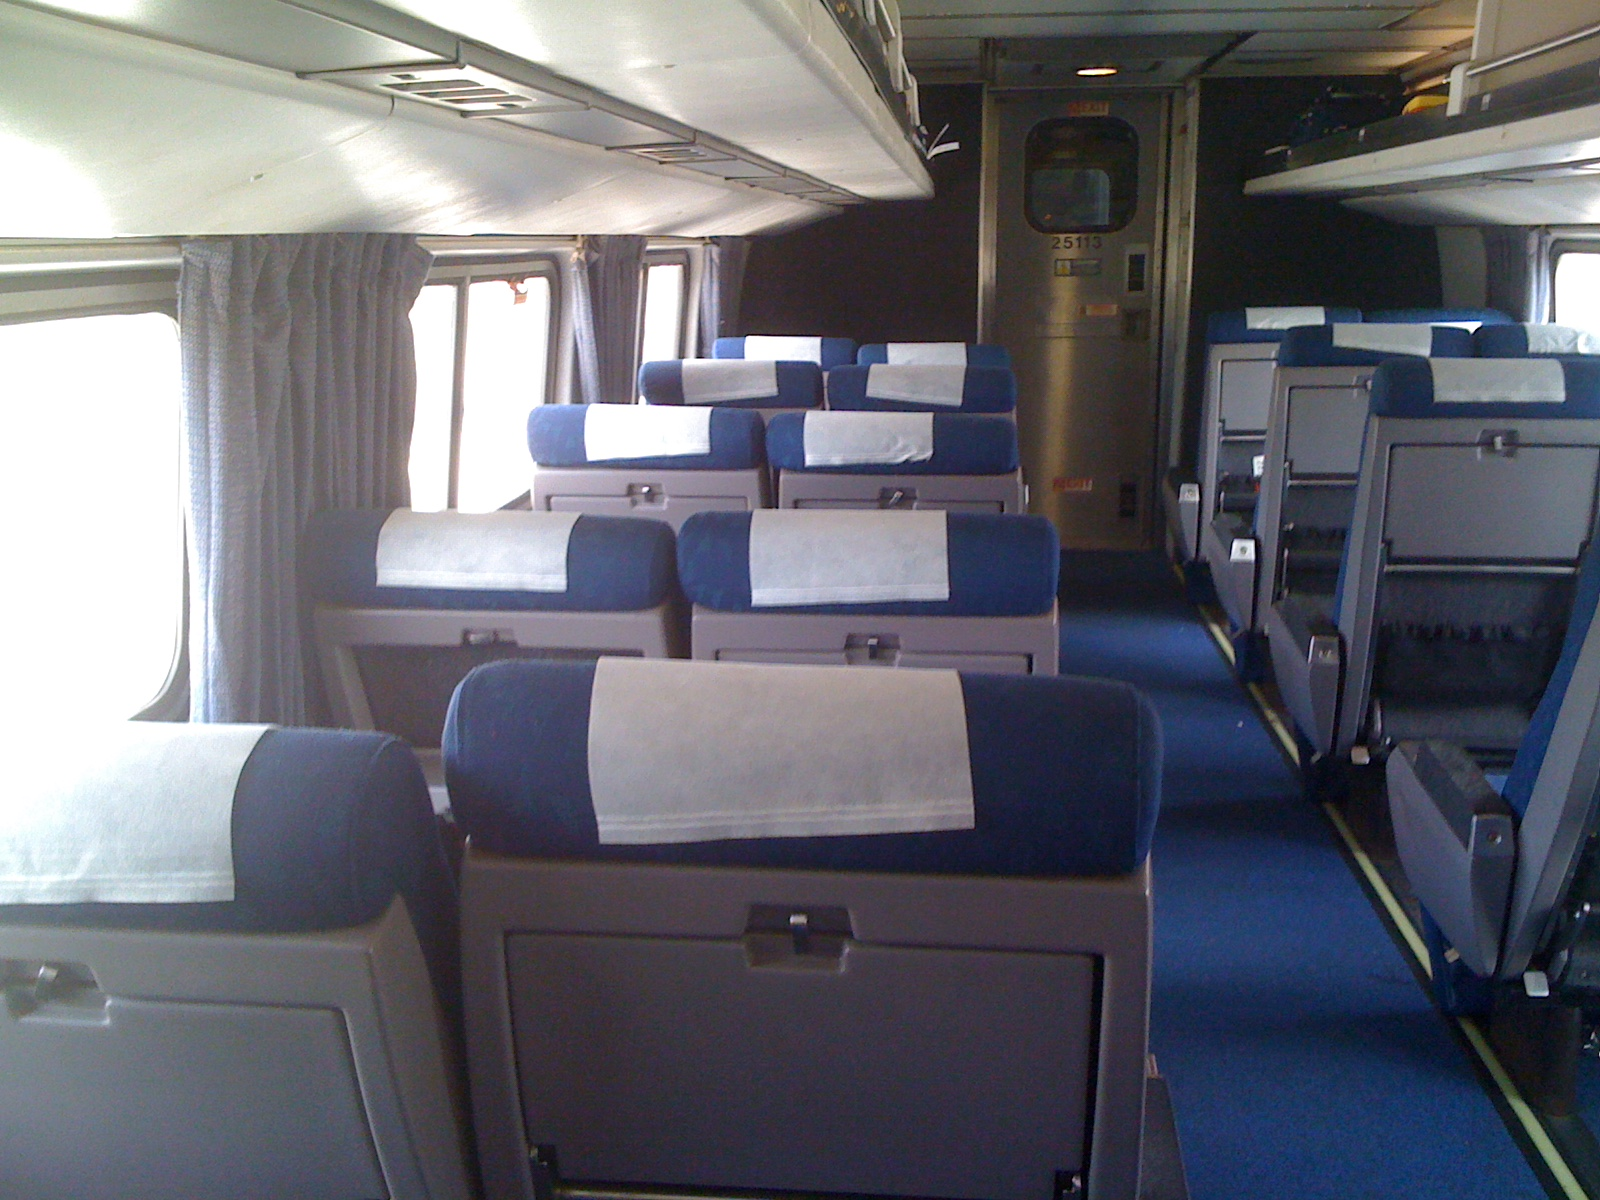 File:Amtrak Amfleet coach interior.jpg - Wikimedia Commons